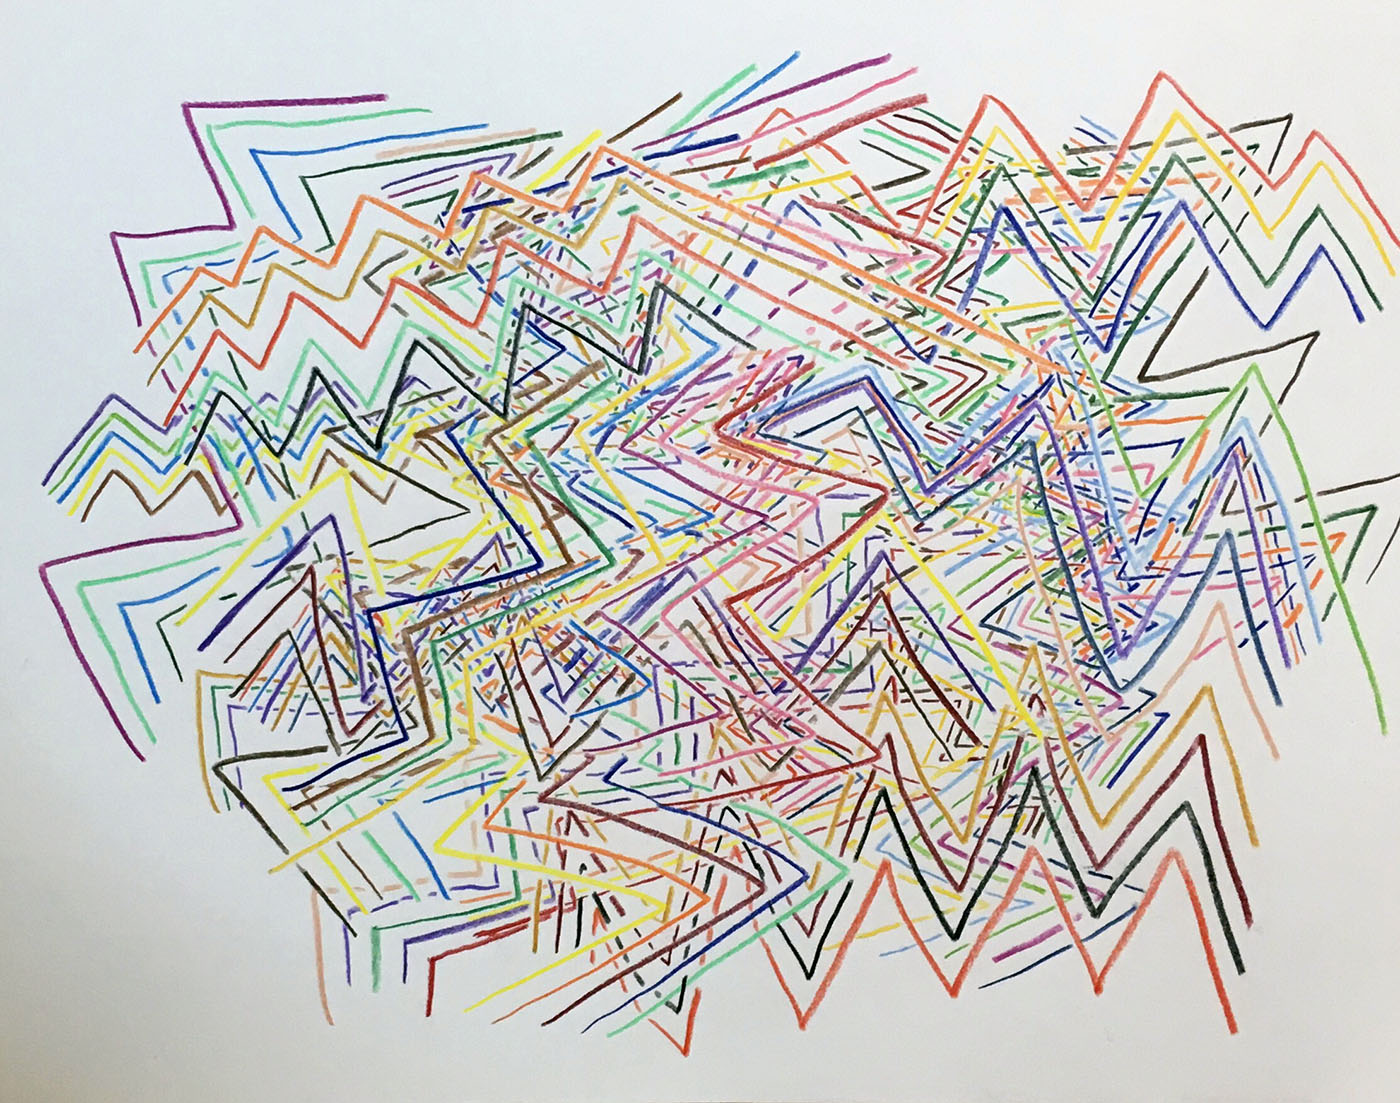 A drawing of overlapping lines